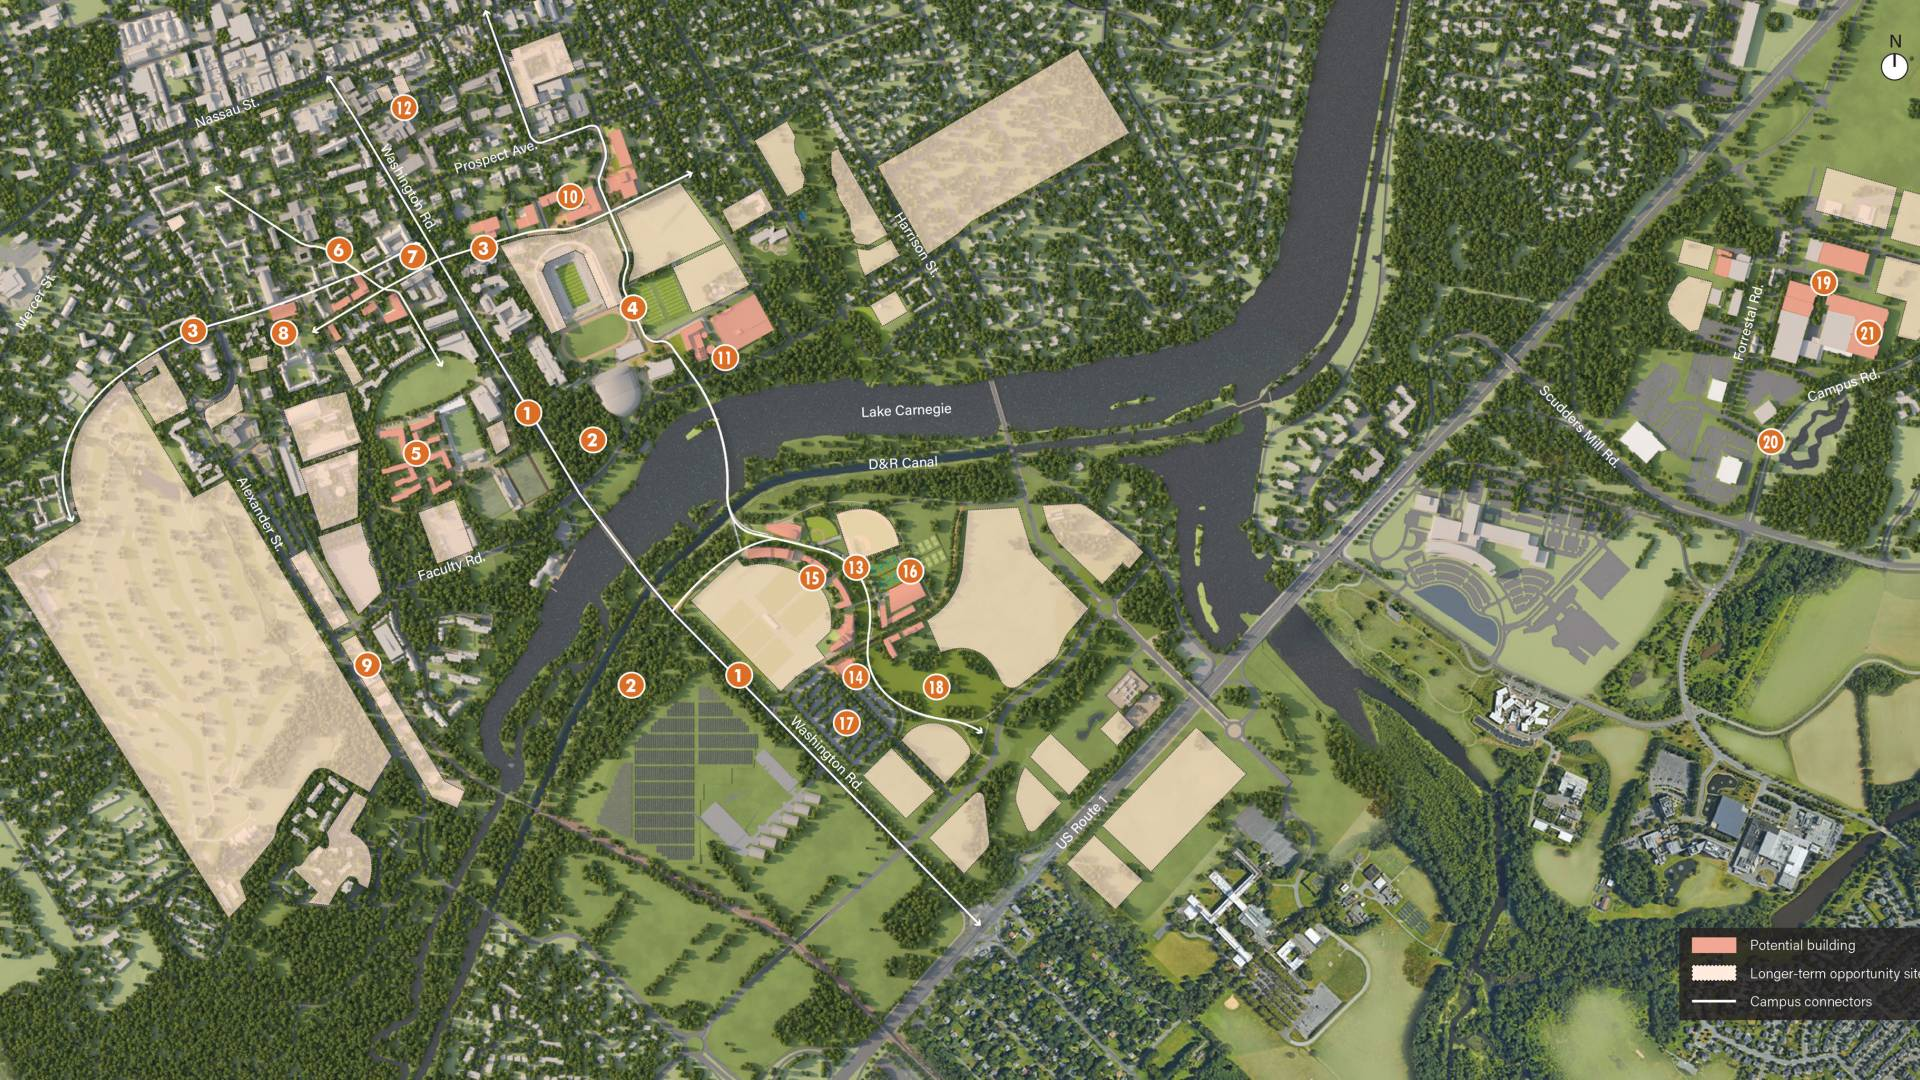 Map of potential projects in campus plan